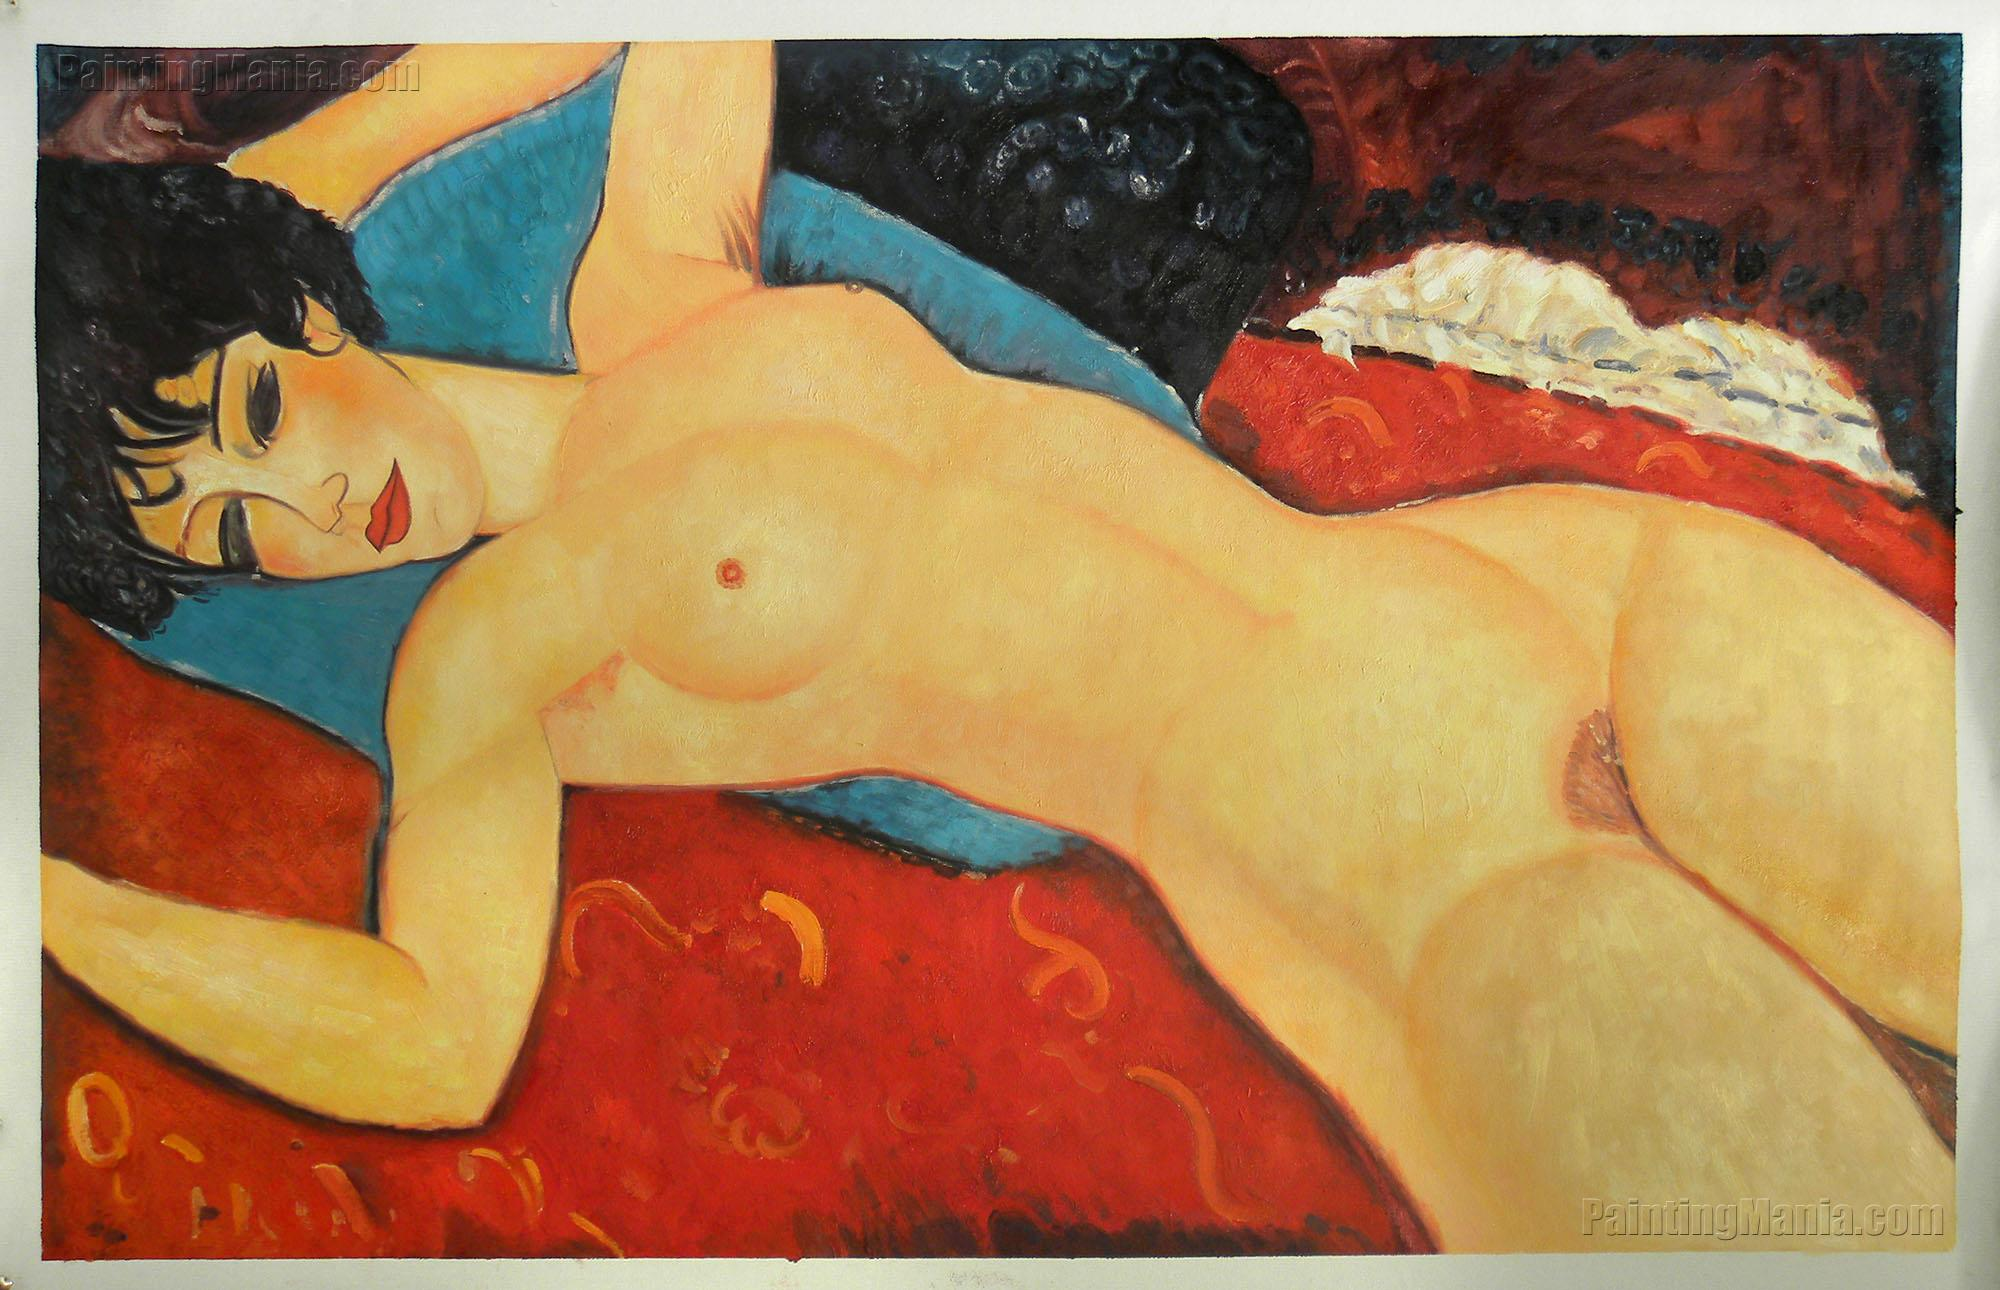 Sleeping Nude with Arms Open (Red Nude)